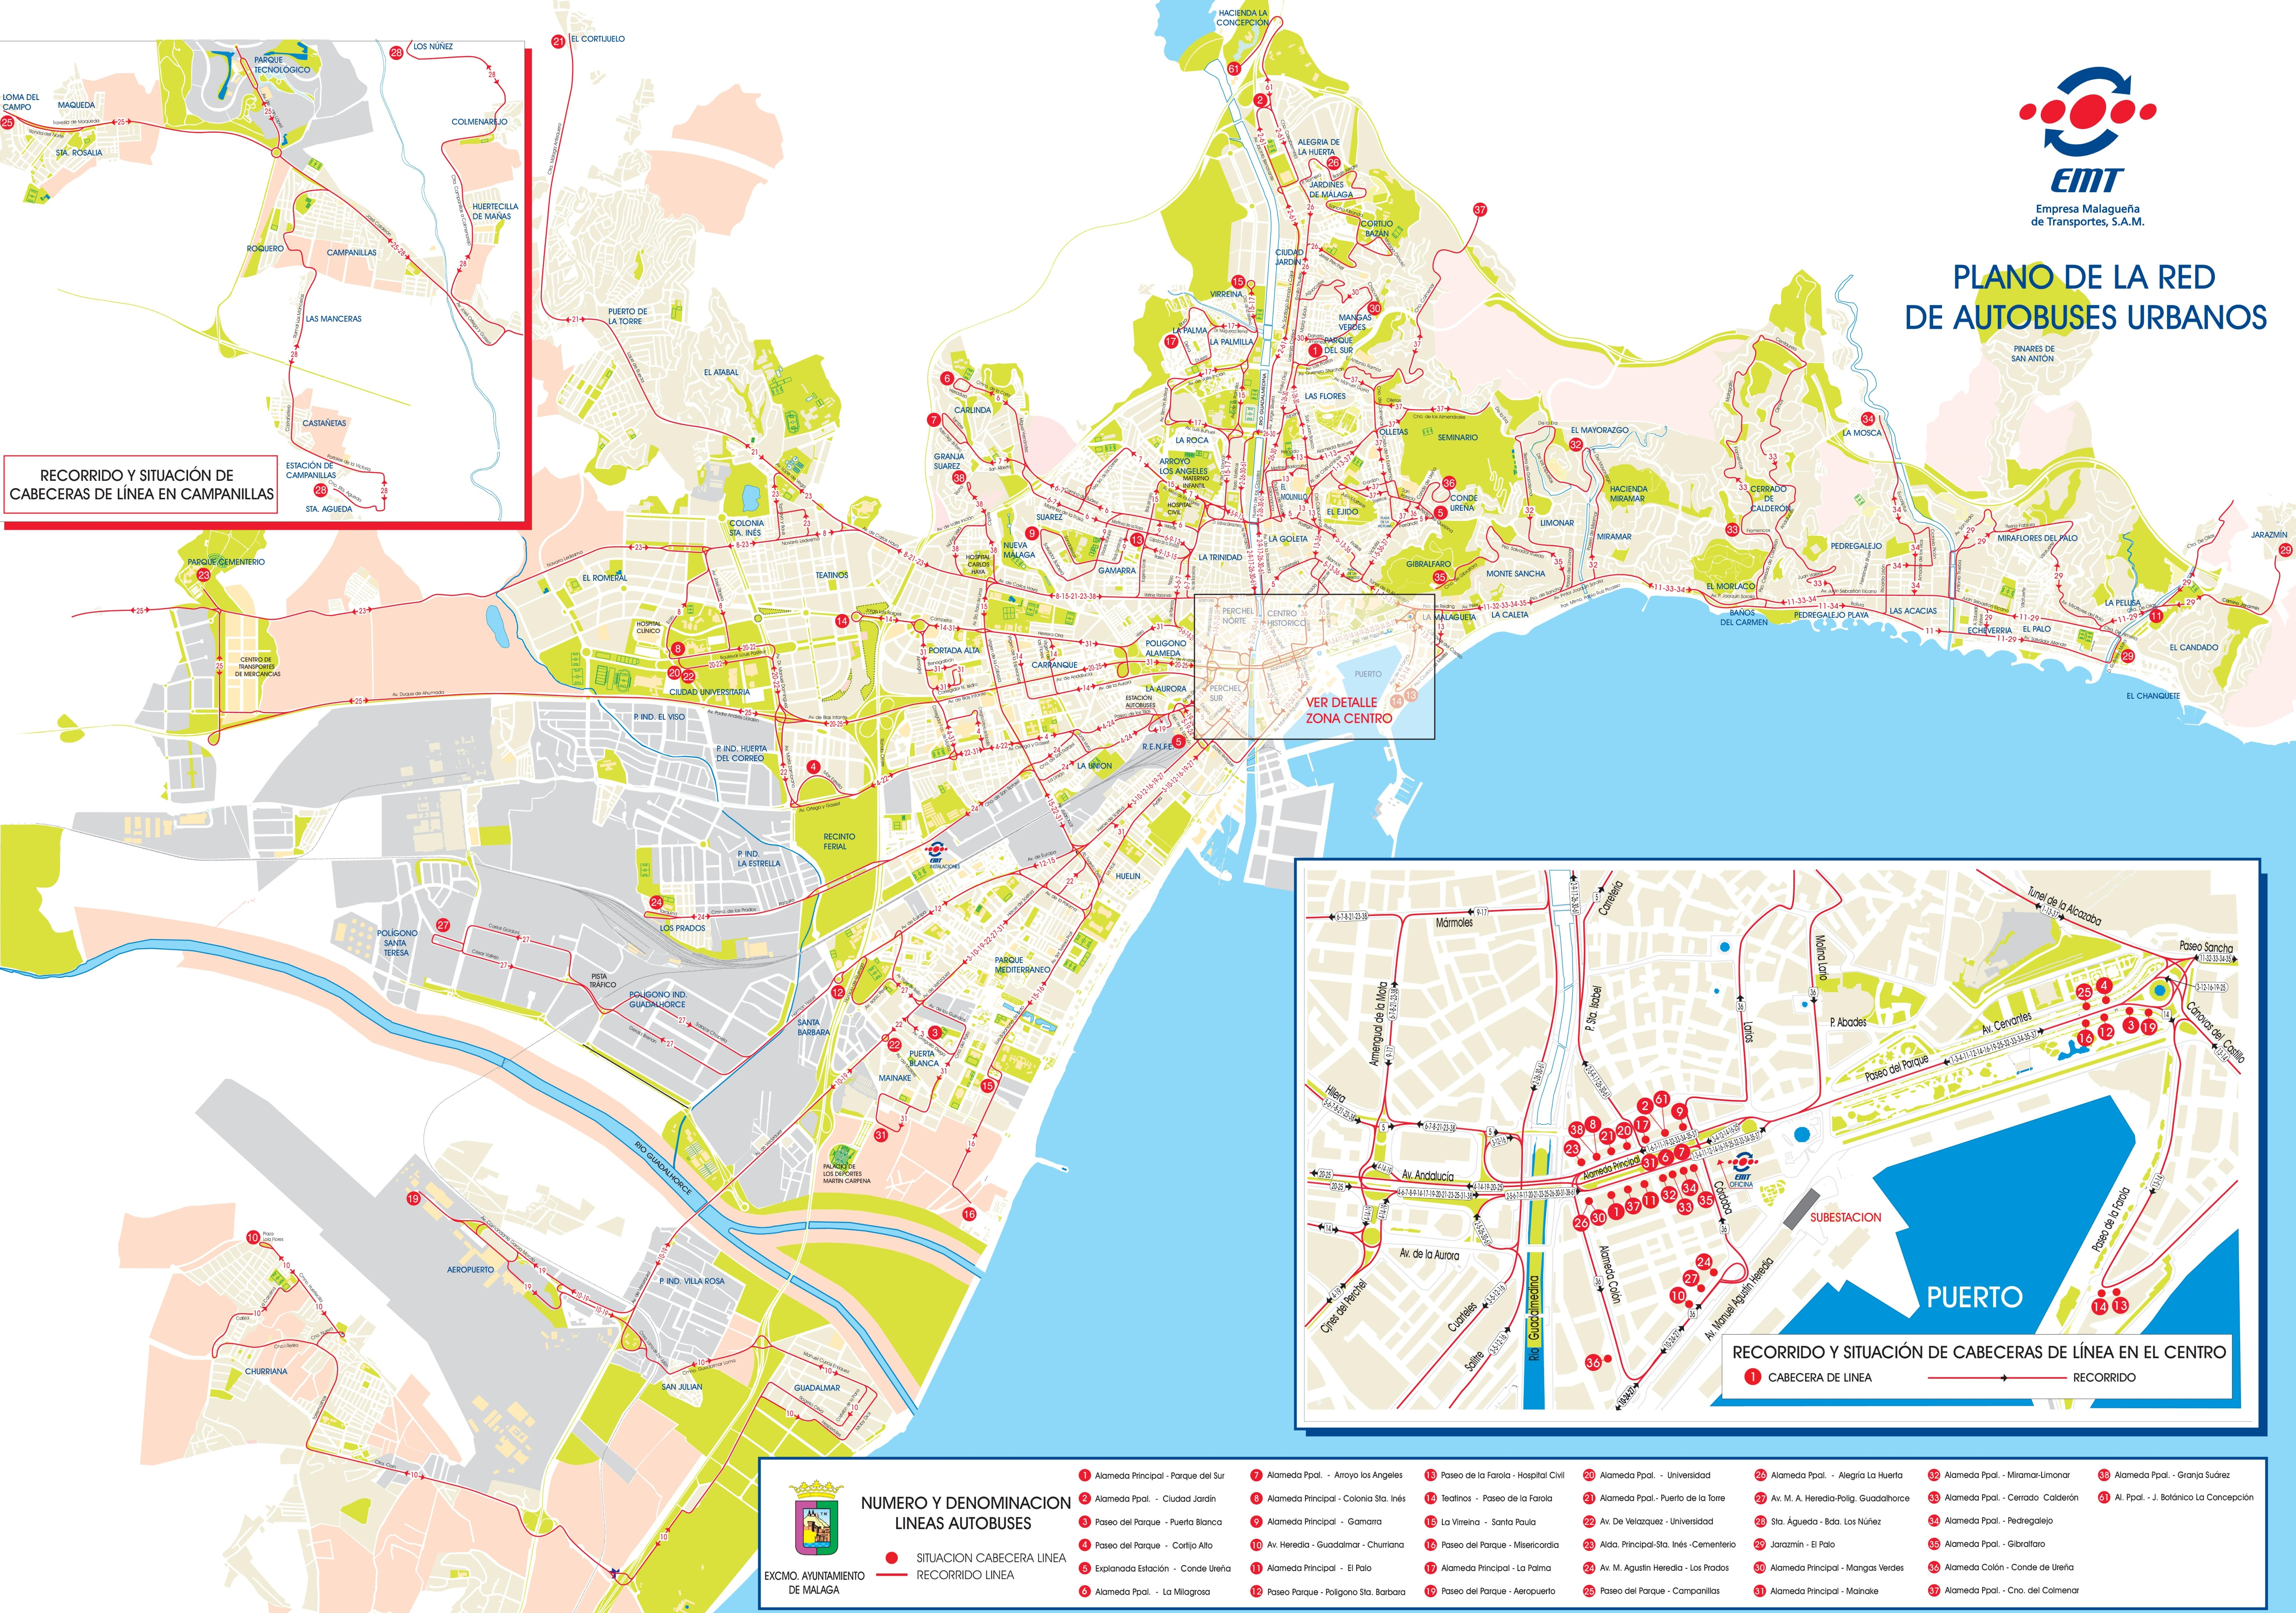 Malaga Hop On Hop Off Bus, Route Map PDF, Combo Deals 2019 ... on map of cudillero, map of getxo, map of puerto rico gran canaria, map of bizkaia, map of penedes, map of macapa, map of monchengladbach, map of sagunto, map of graysville, map of tampere, map of mount ephraim, map of venice marco polo, map of marsala, map of iruna, map of italica, map of costa de la luz, map of soria, map of andalucia, map of isla margarita, map of mutare,